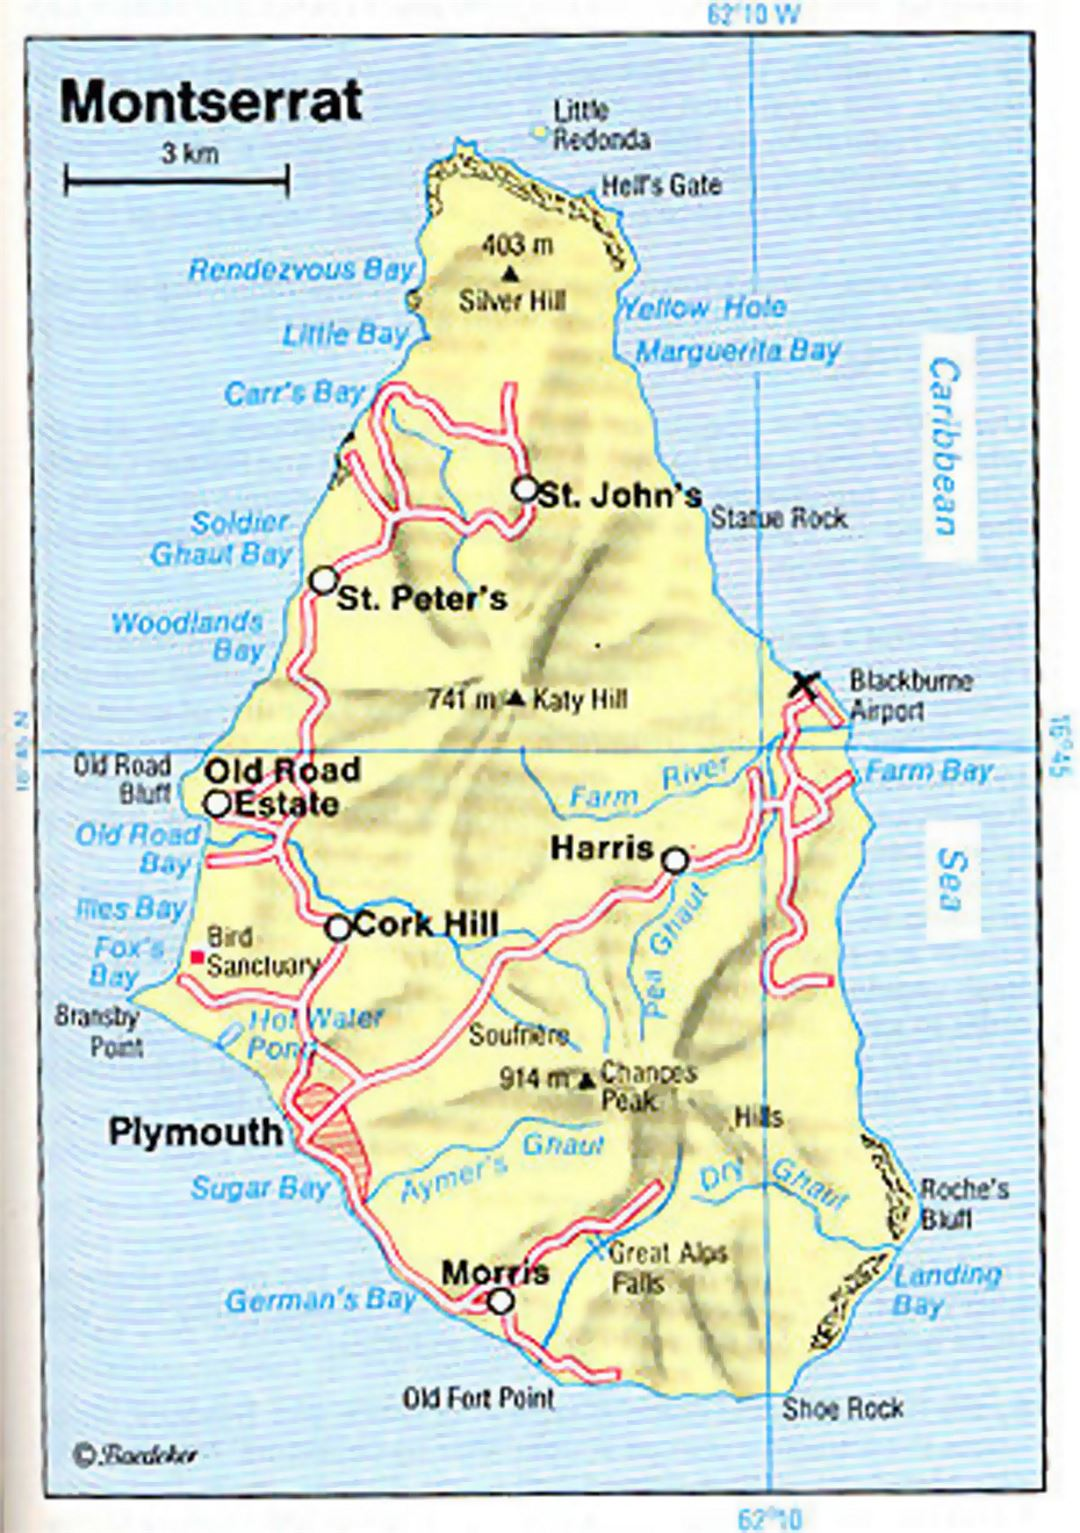 Road Map Of Montserrat Island With Relief Montserrat Island - Montserrat map